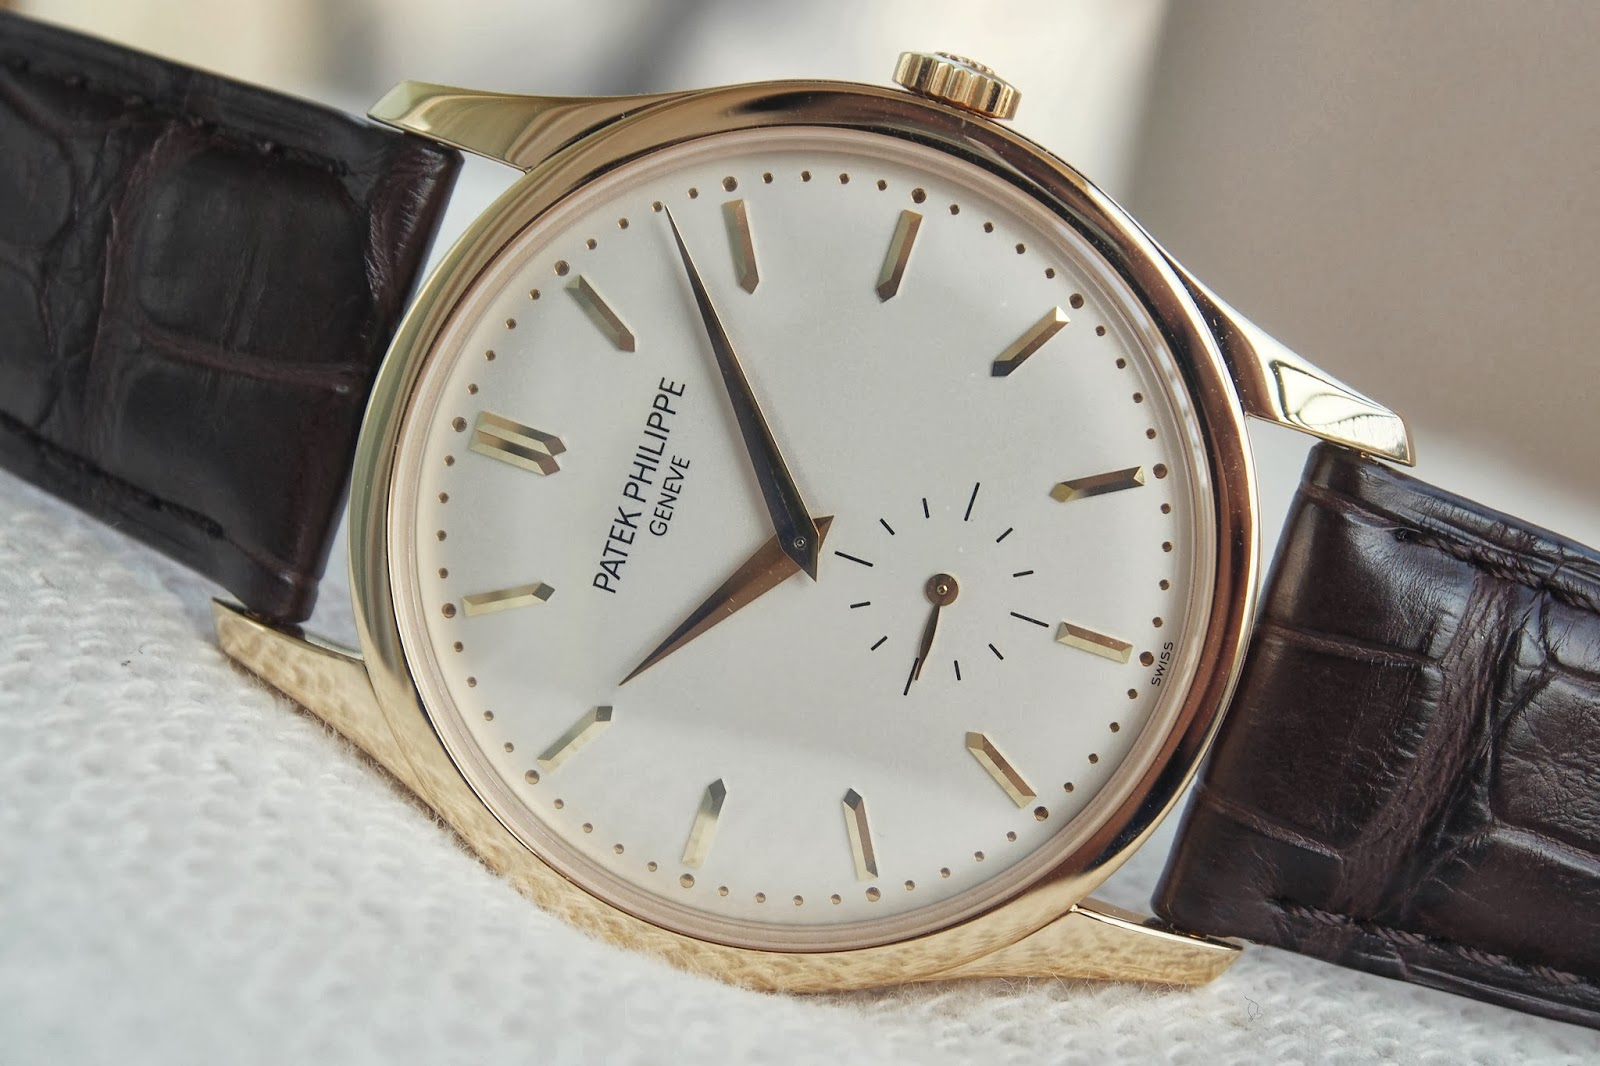 Patek Philippe Calatrava Ref. 5196J-001 (Yellow Gold)